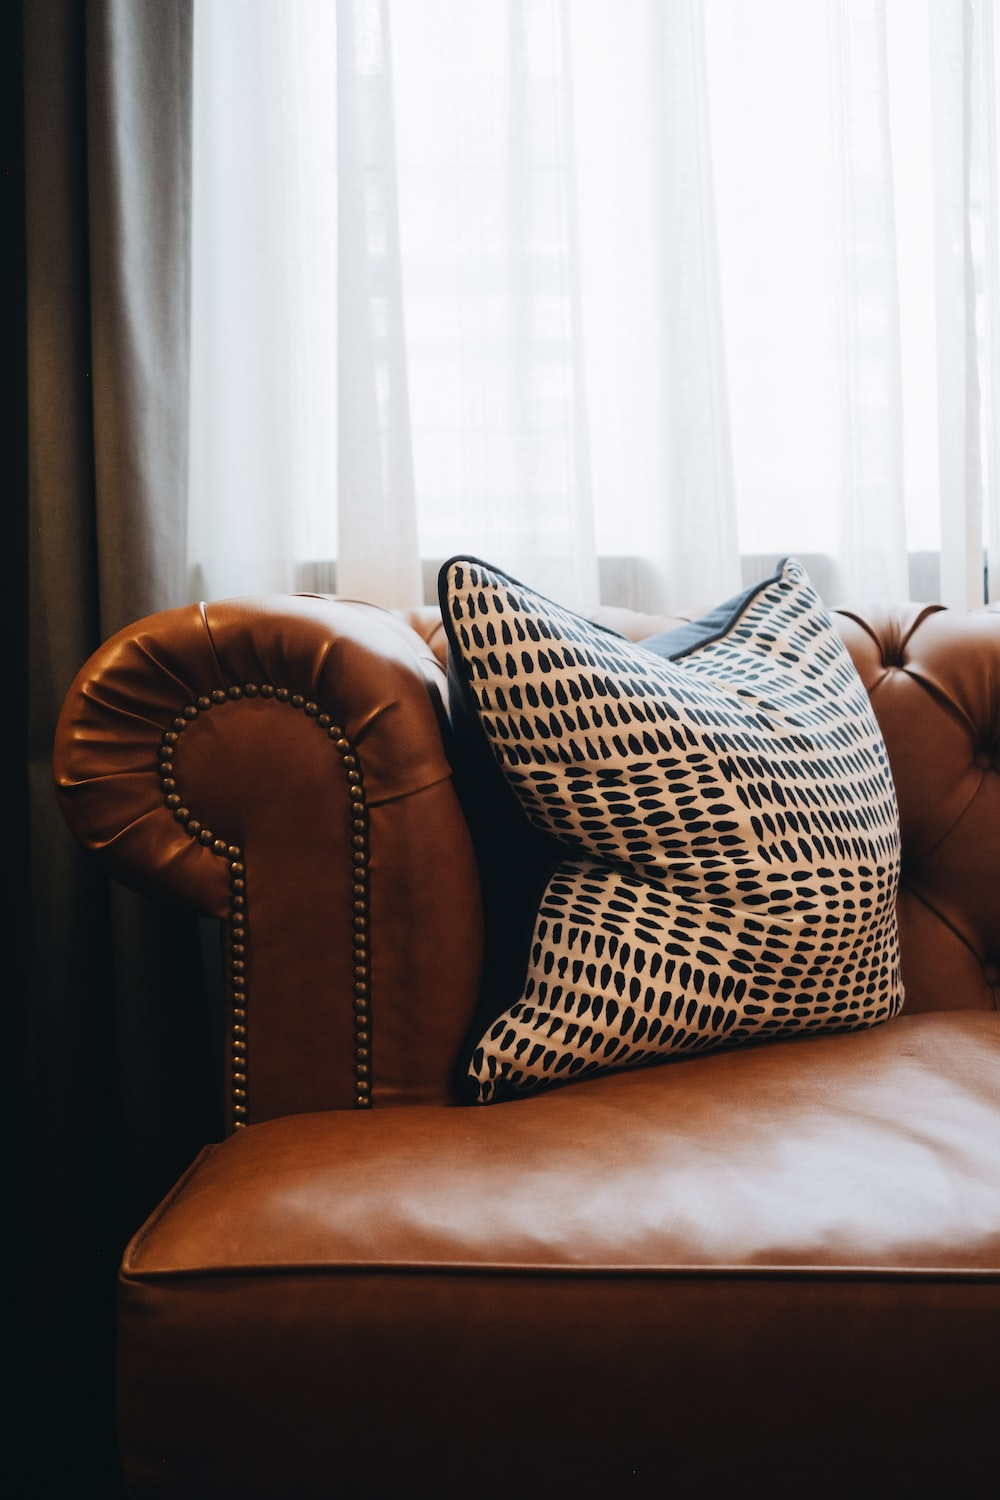 brown and white throw pillow on brown leather couch